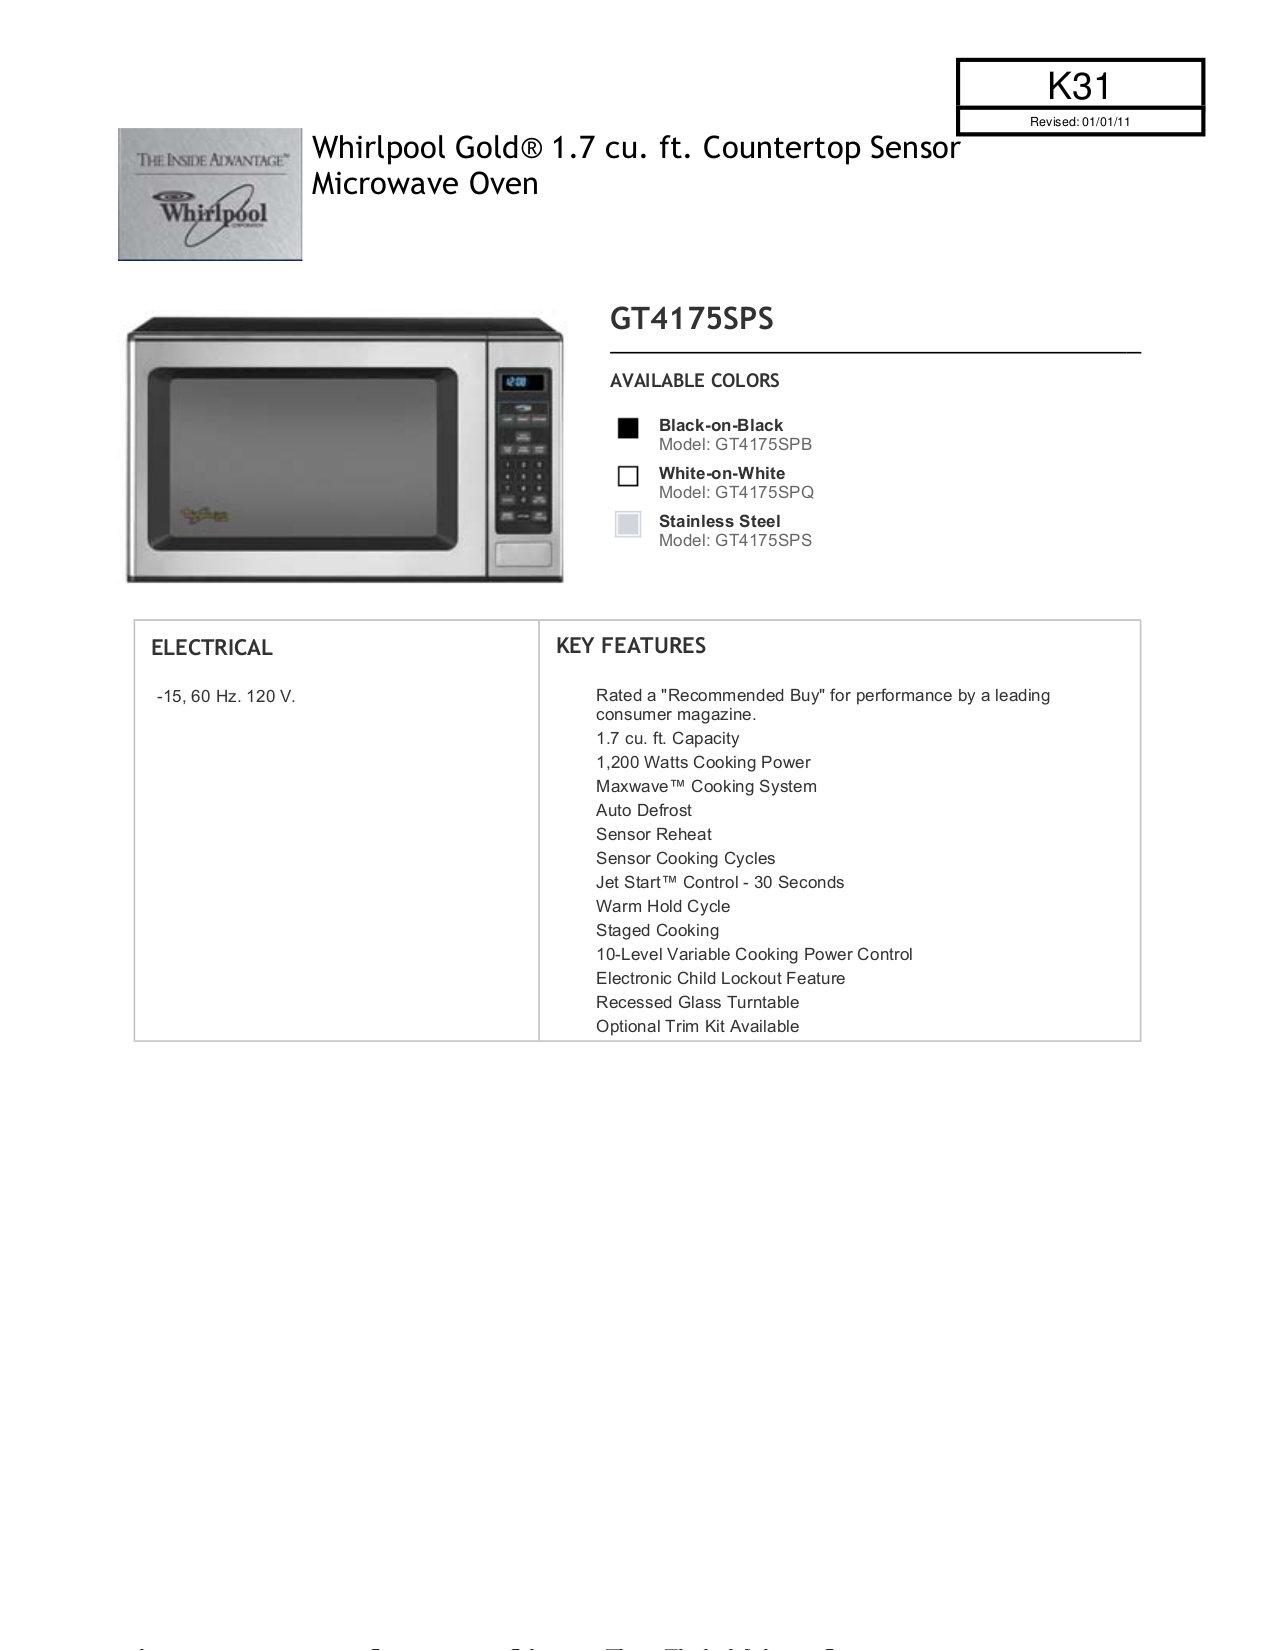 Free Pdf For Whirlpool Gold Gt4175sps Microwave Manual